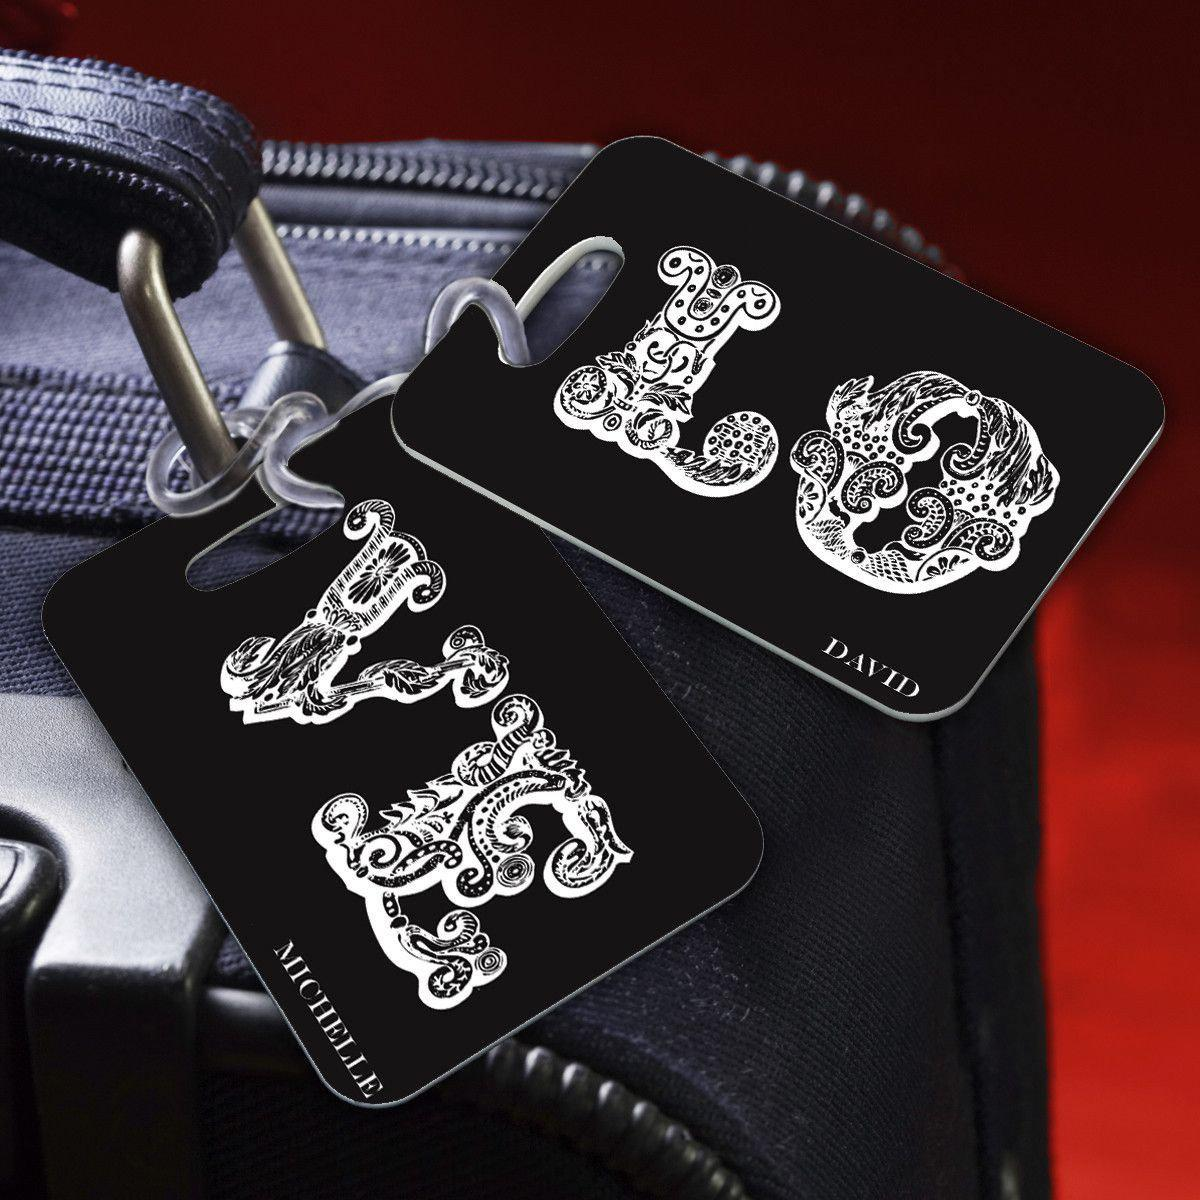 Personalized-Couples-Luggage-Tags